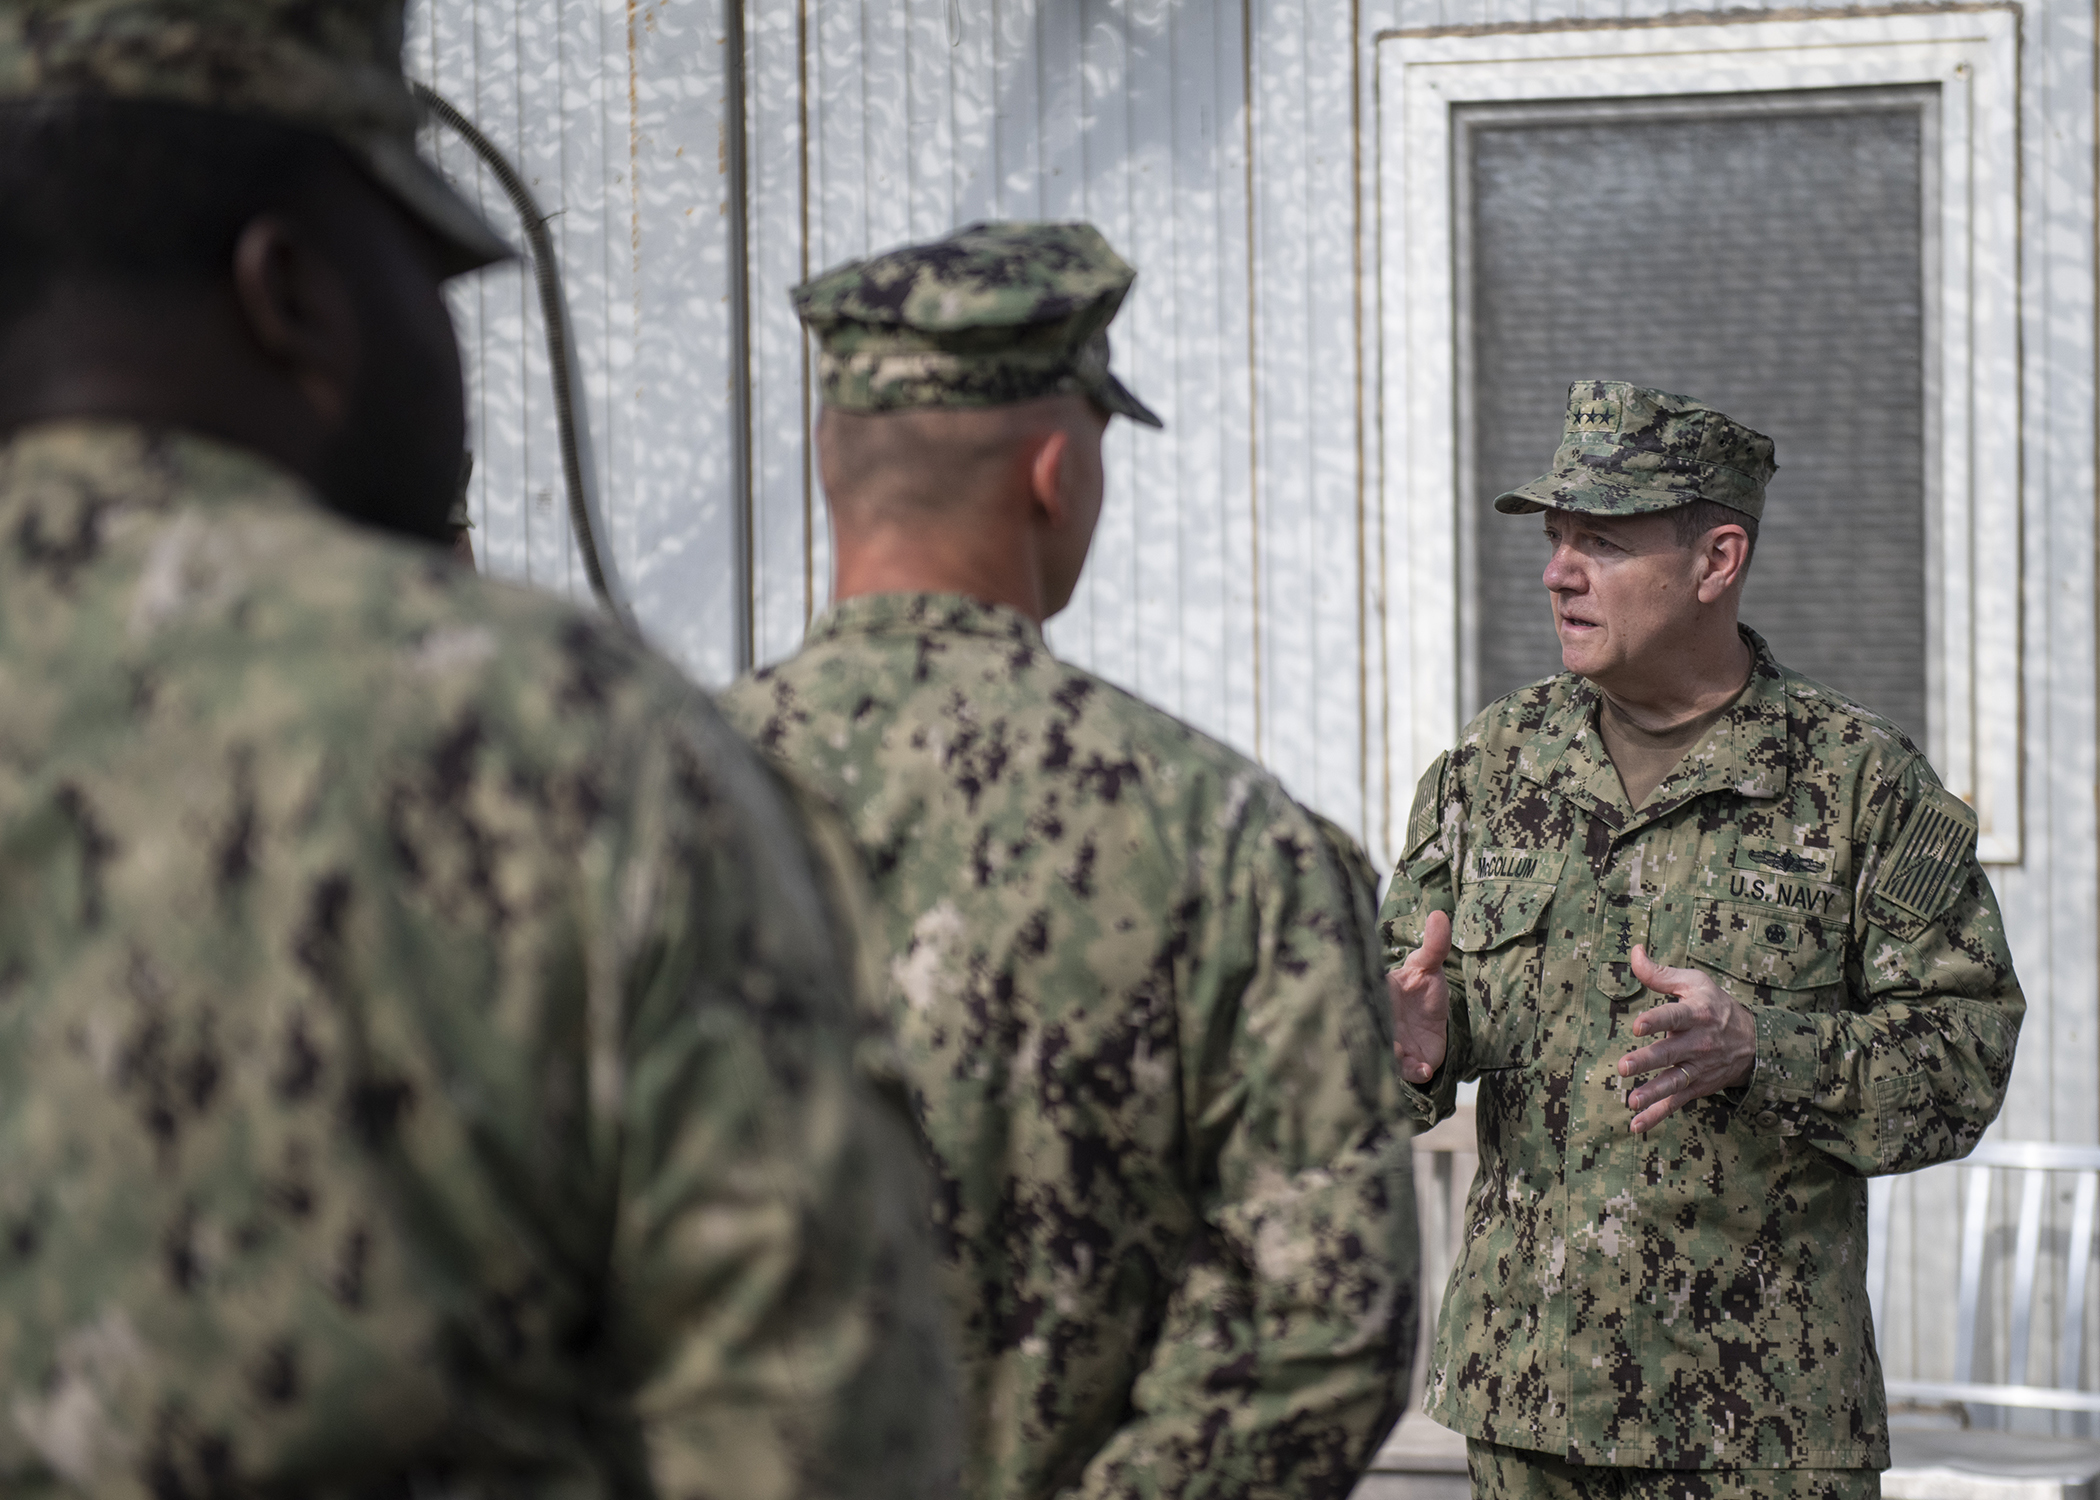 Chief of Navy Reserve Vice Adm. Luke McCollum addresses U.S. Navy Seabees, from Naval Mobile Construction Battalion 1, assigned to Combined Joint Task Force - Horn of Africa, while visiting Camp Lemonnier, Djibouti, Feb. 3, 2019. McCollum visited as part of a tour of Reserve units to answer questions, discuss leadership initiatives and interact with local Sailors. (U.S. Air Force photo by Tech. Sgt. Shawn Nickel)